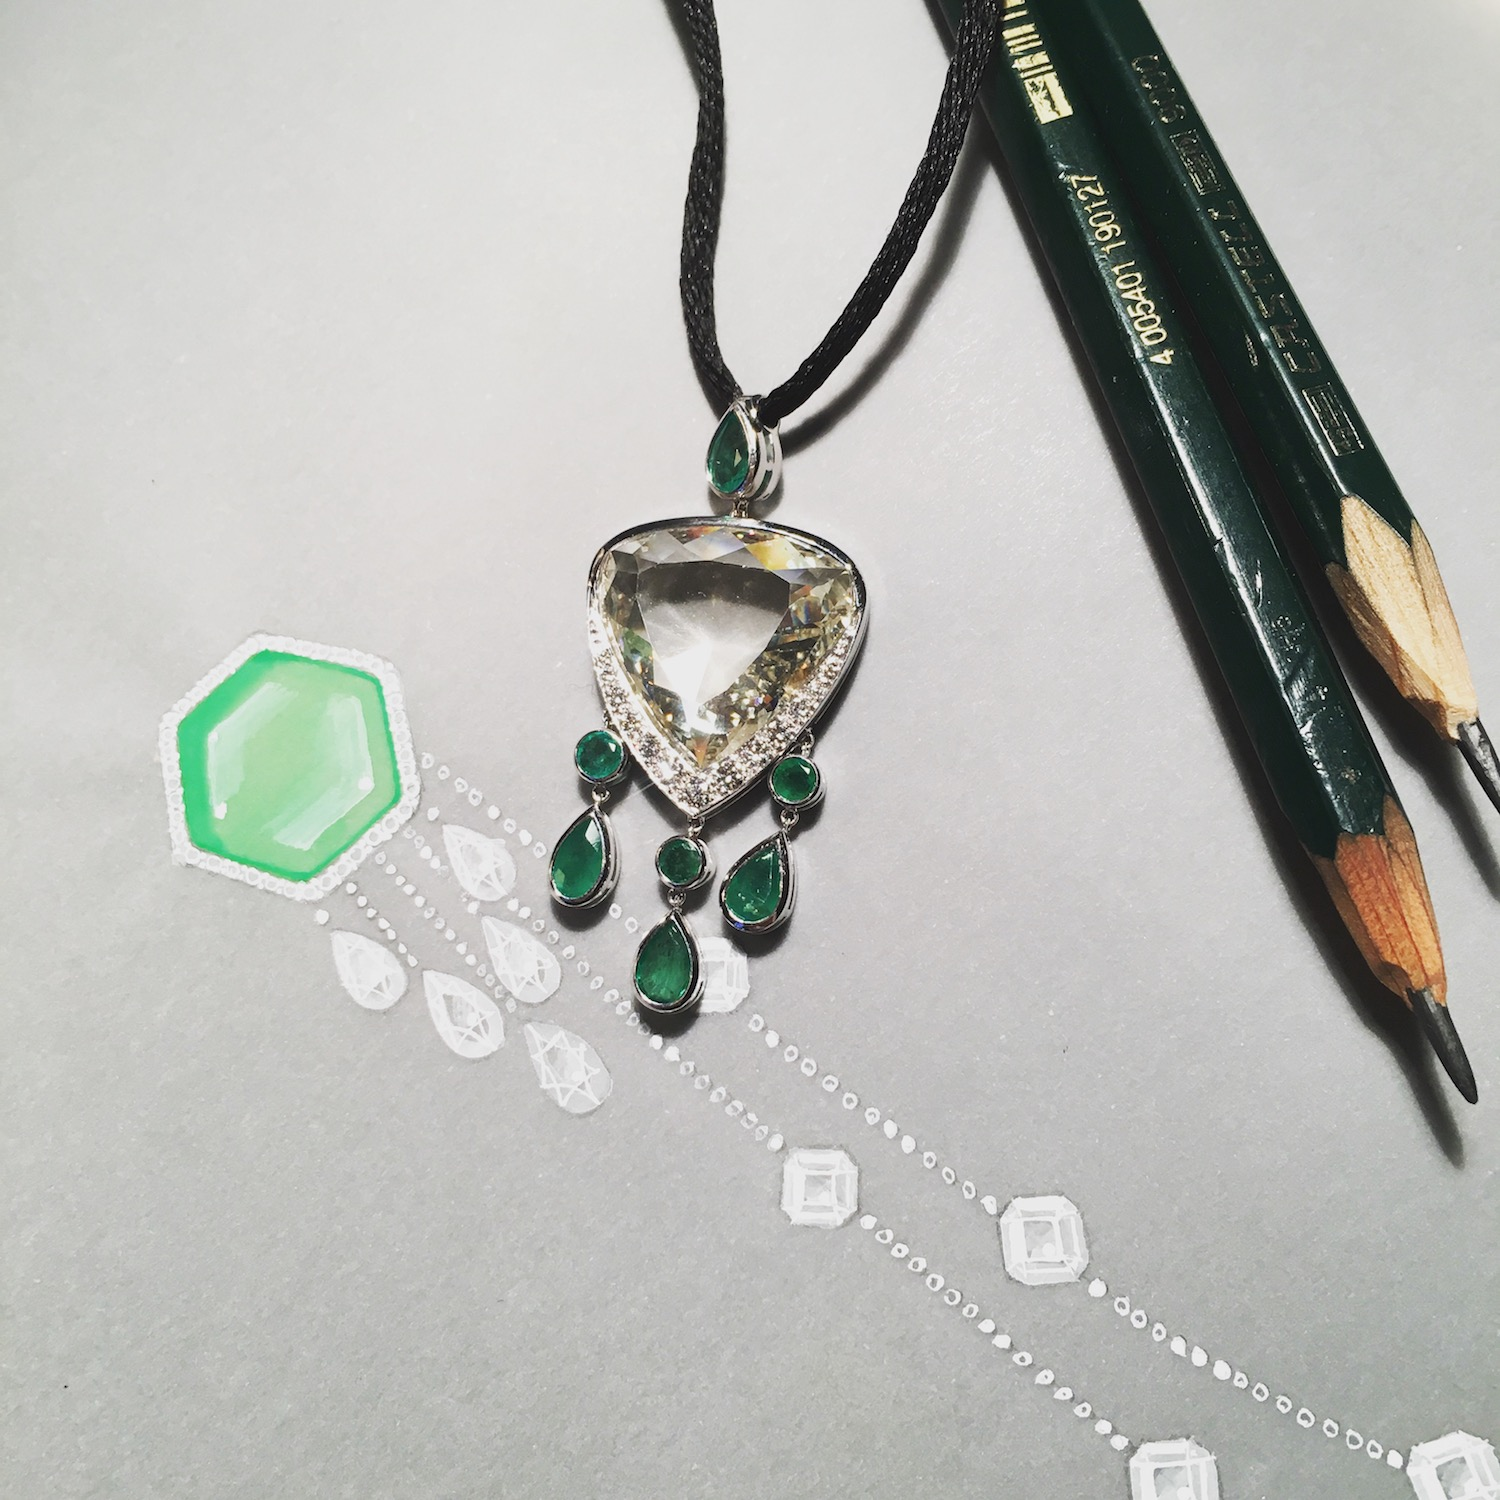 Different design concepts can be adapted to suit different stones, as can be seen here with this emerald and diamond pendant.